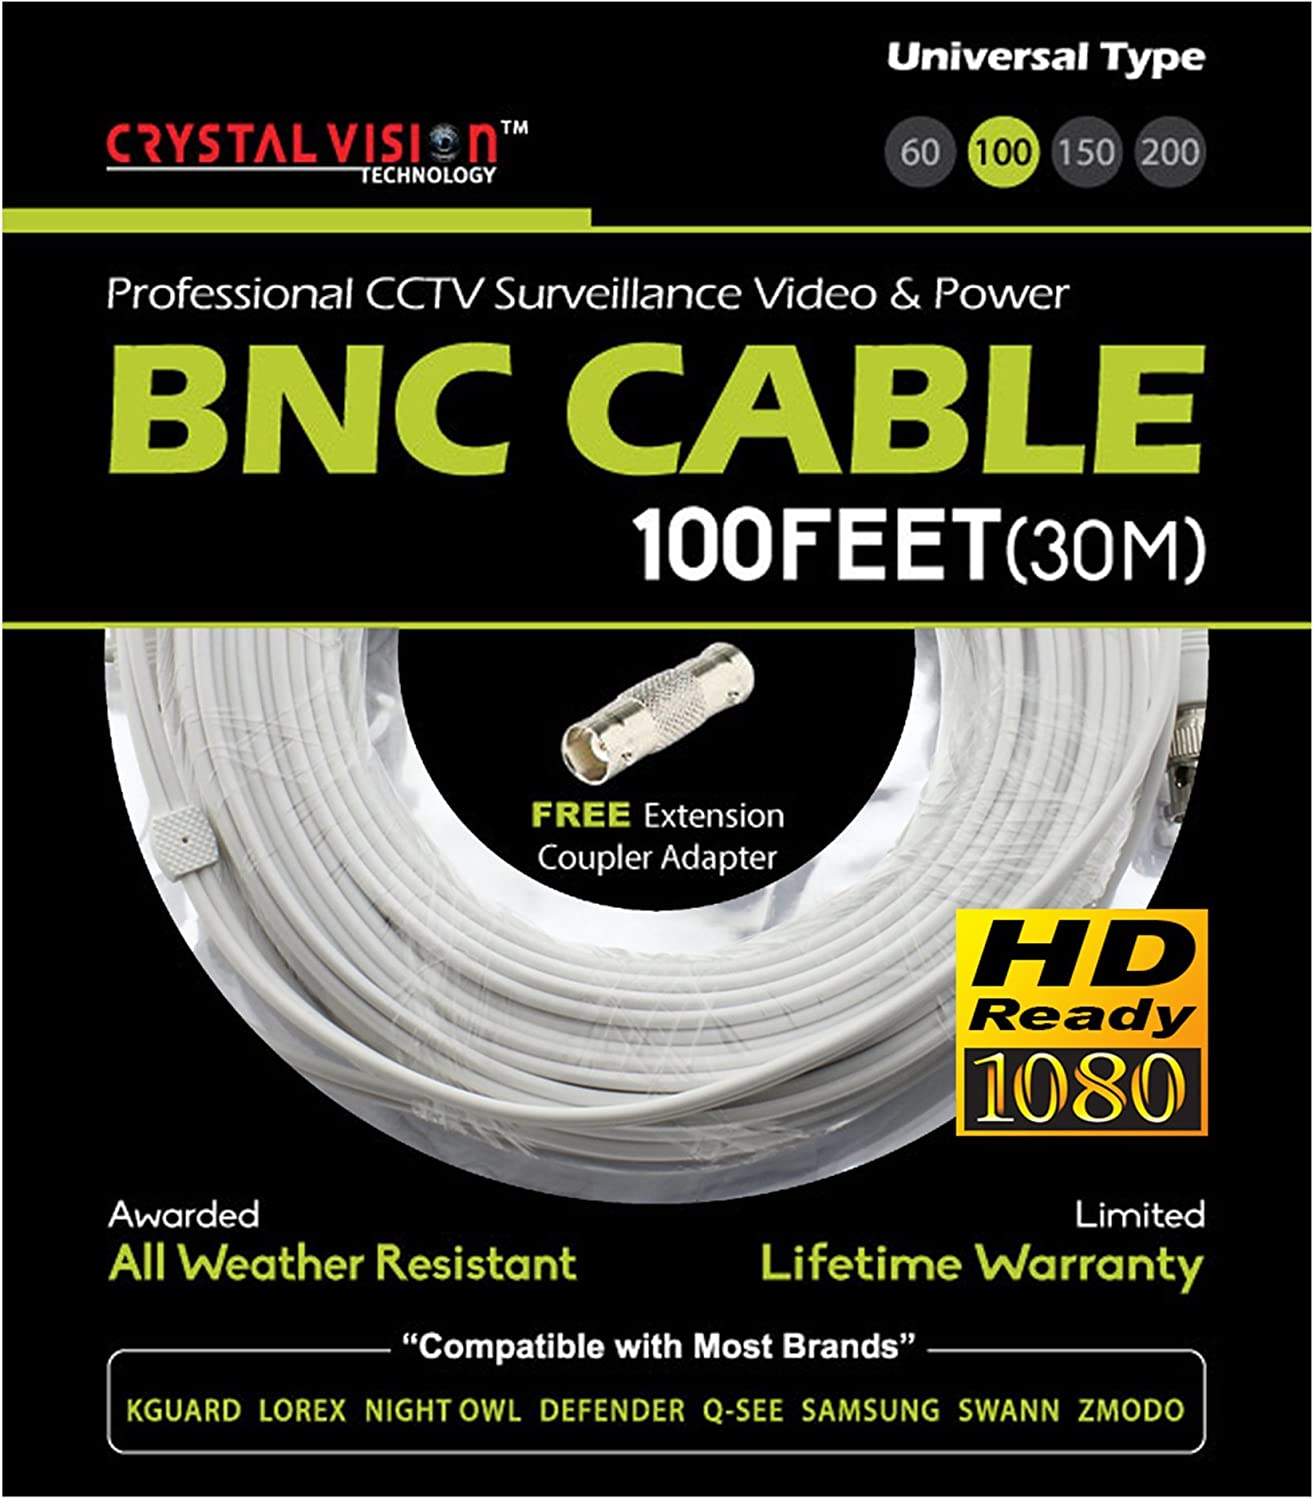 New 2 High Quality 100FT BNC Extension CCTV Cable for Samsung,Kguard,Swan,Lorex